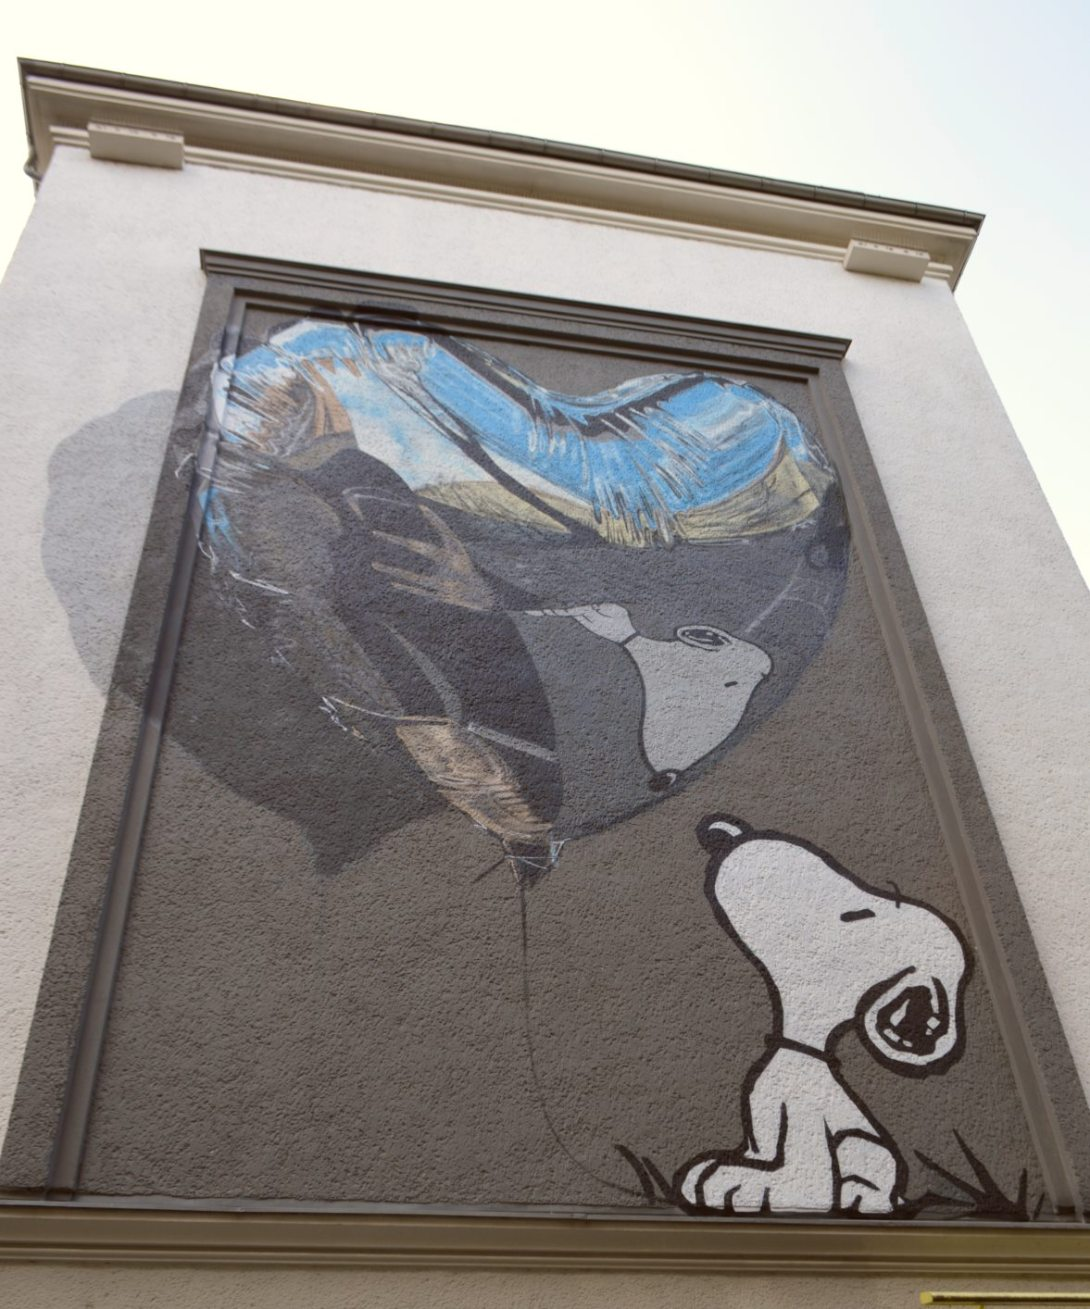 In Dog WE Trust Mural Wandbild Street art Berlin Schwedter Strasse Prenzlauer Berg #snoopy #art